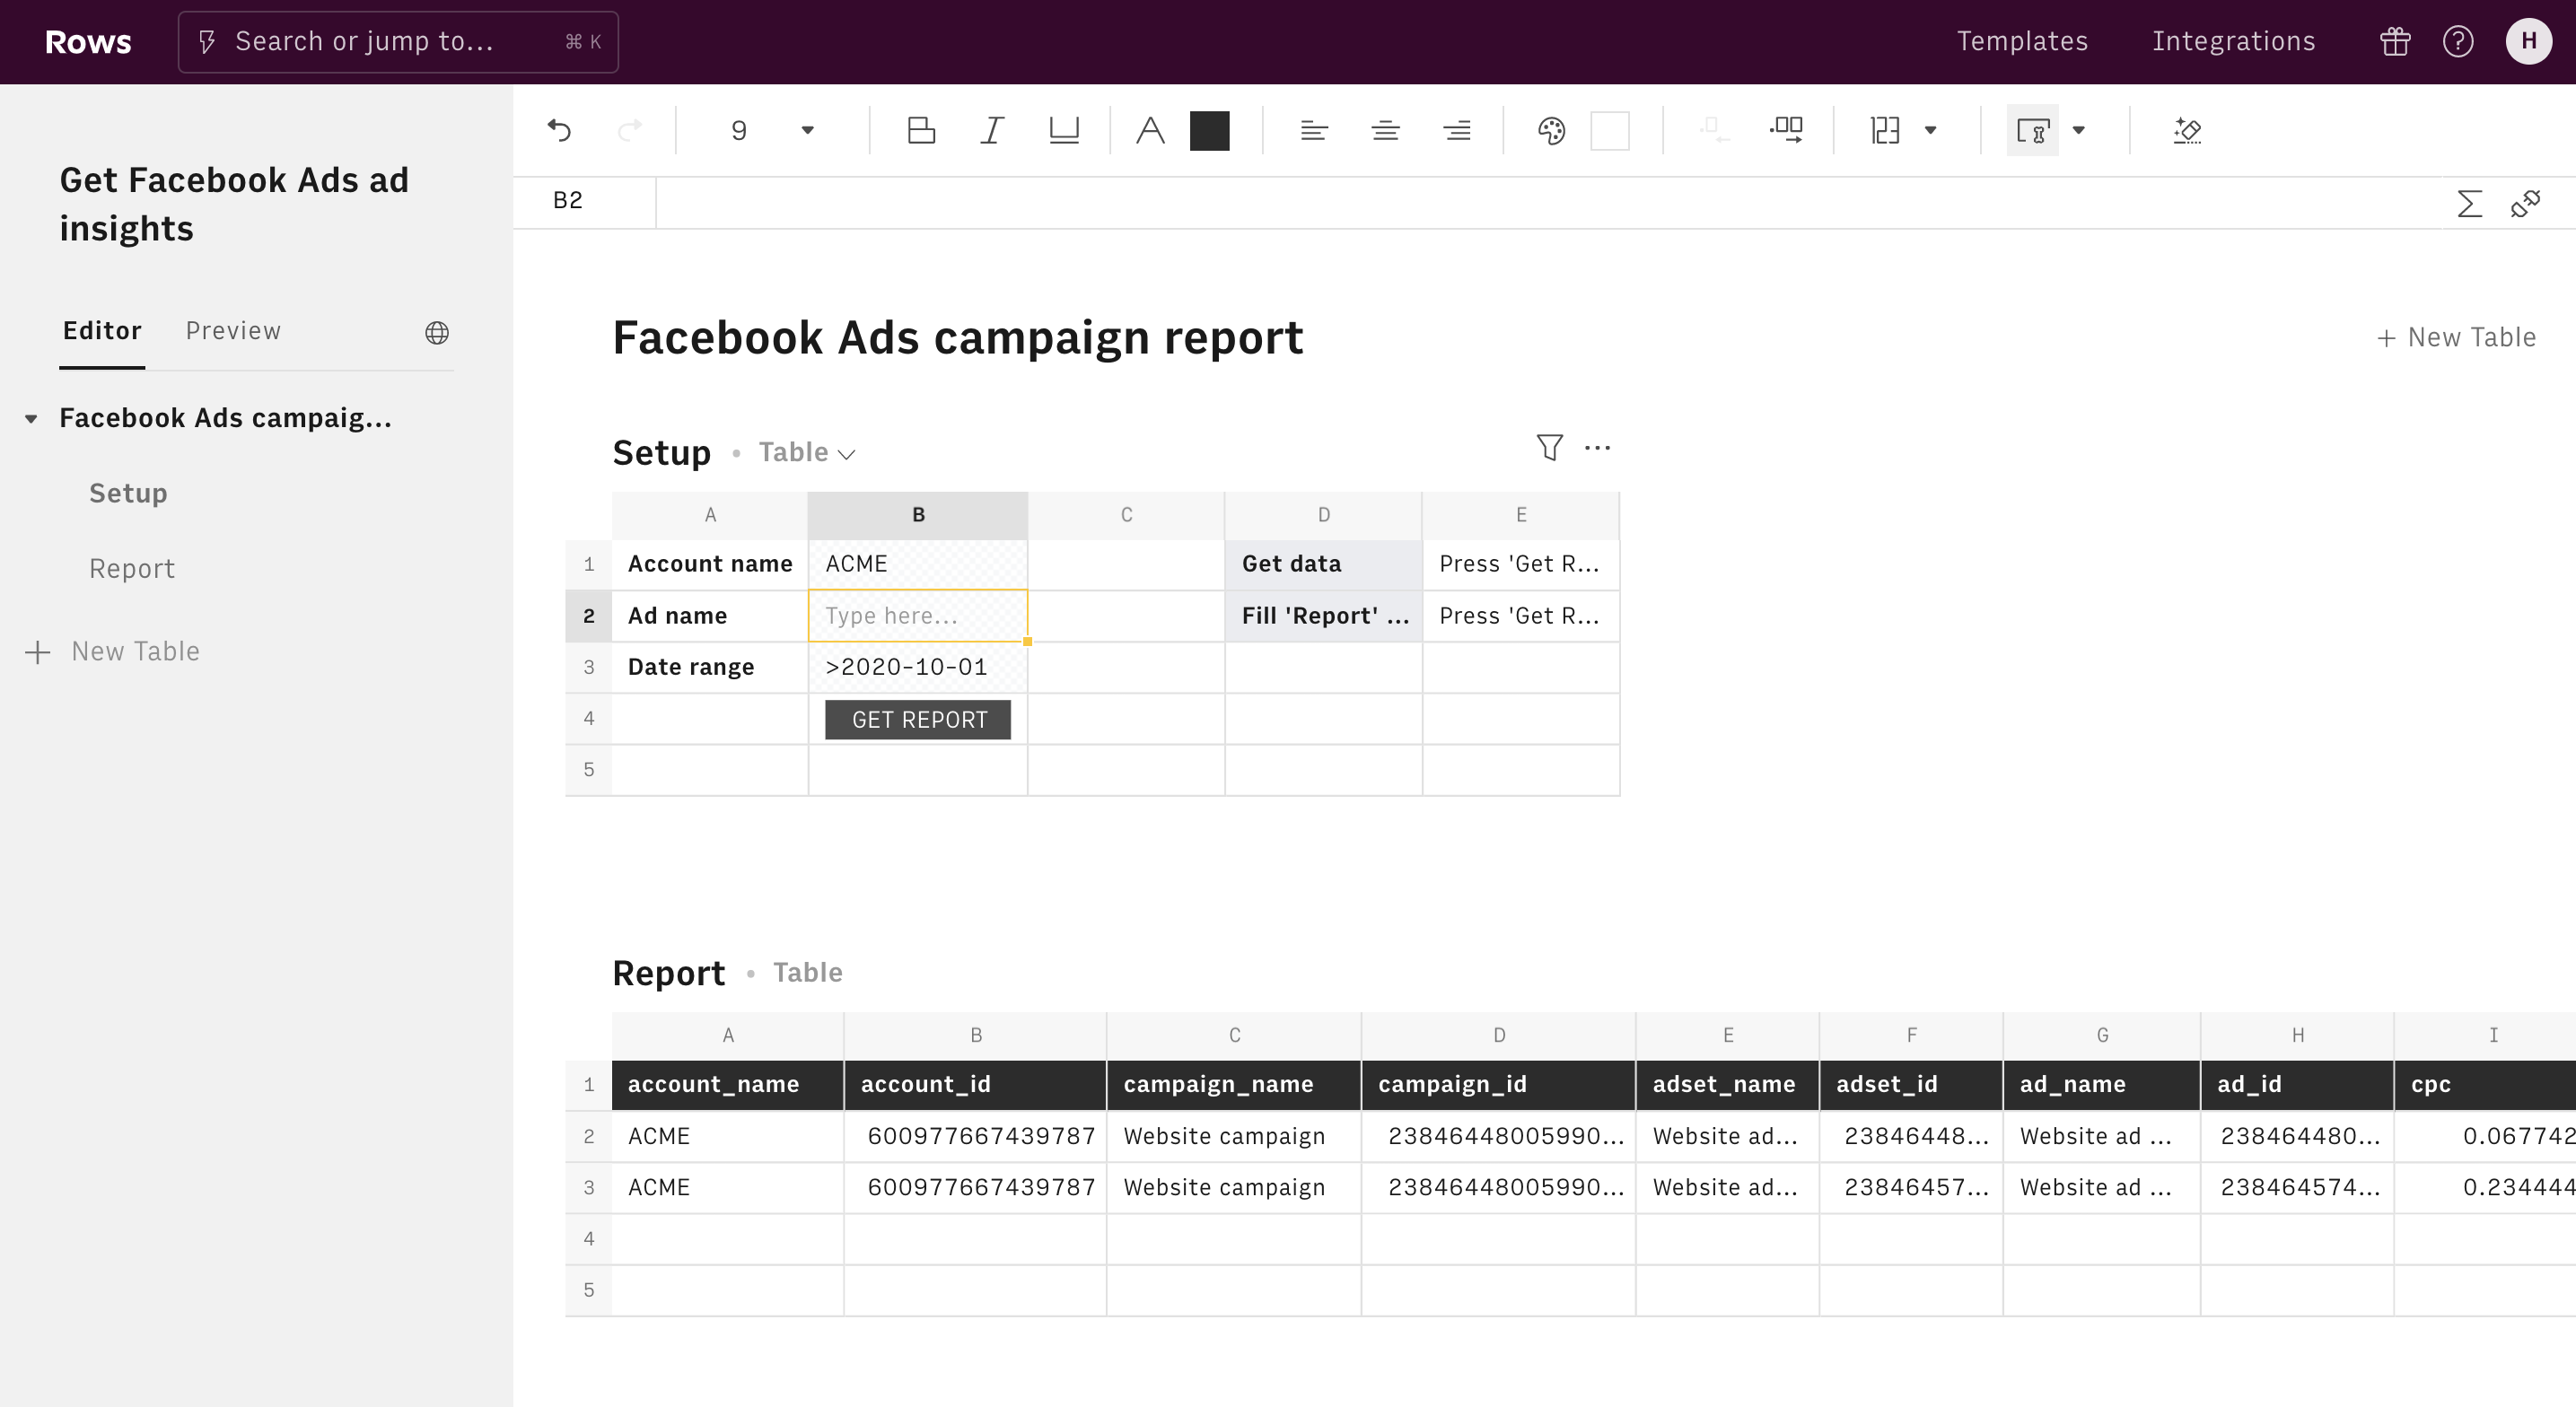 Get Facebook Ads ad insights editor 1